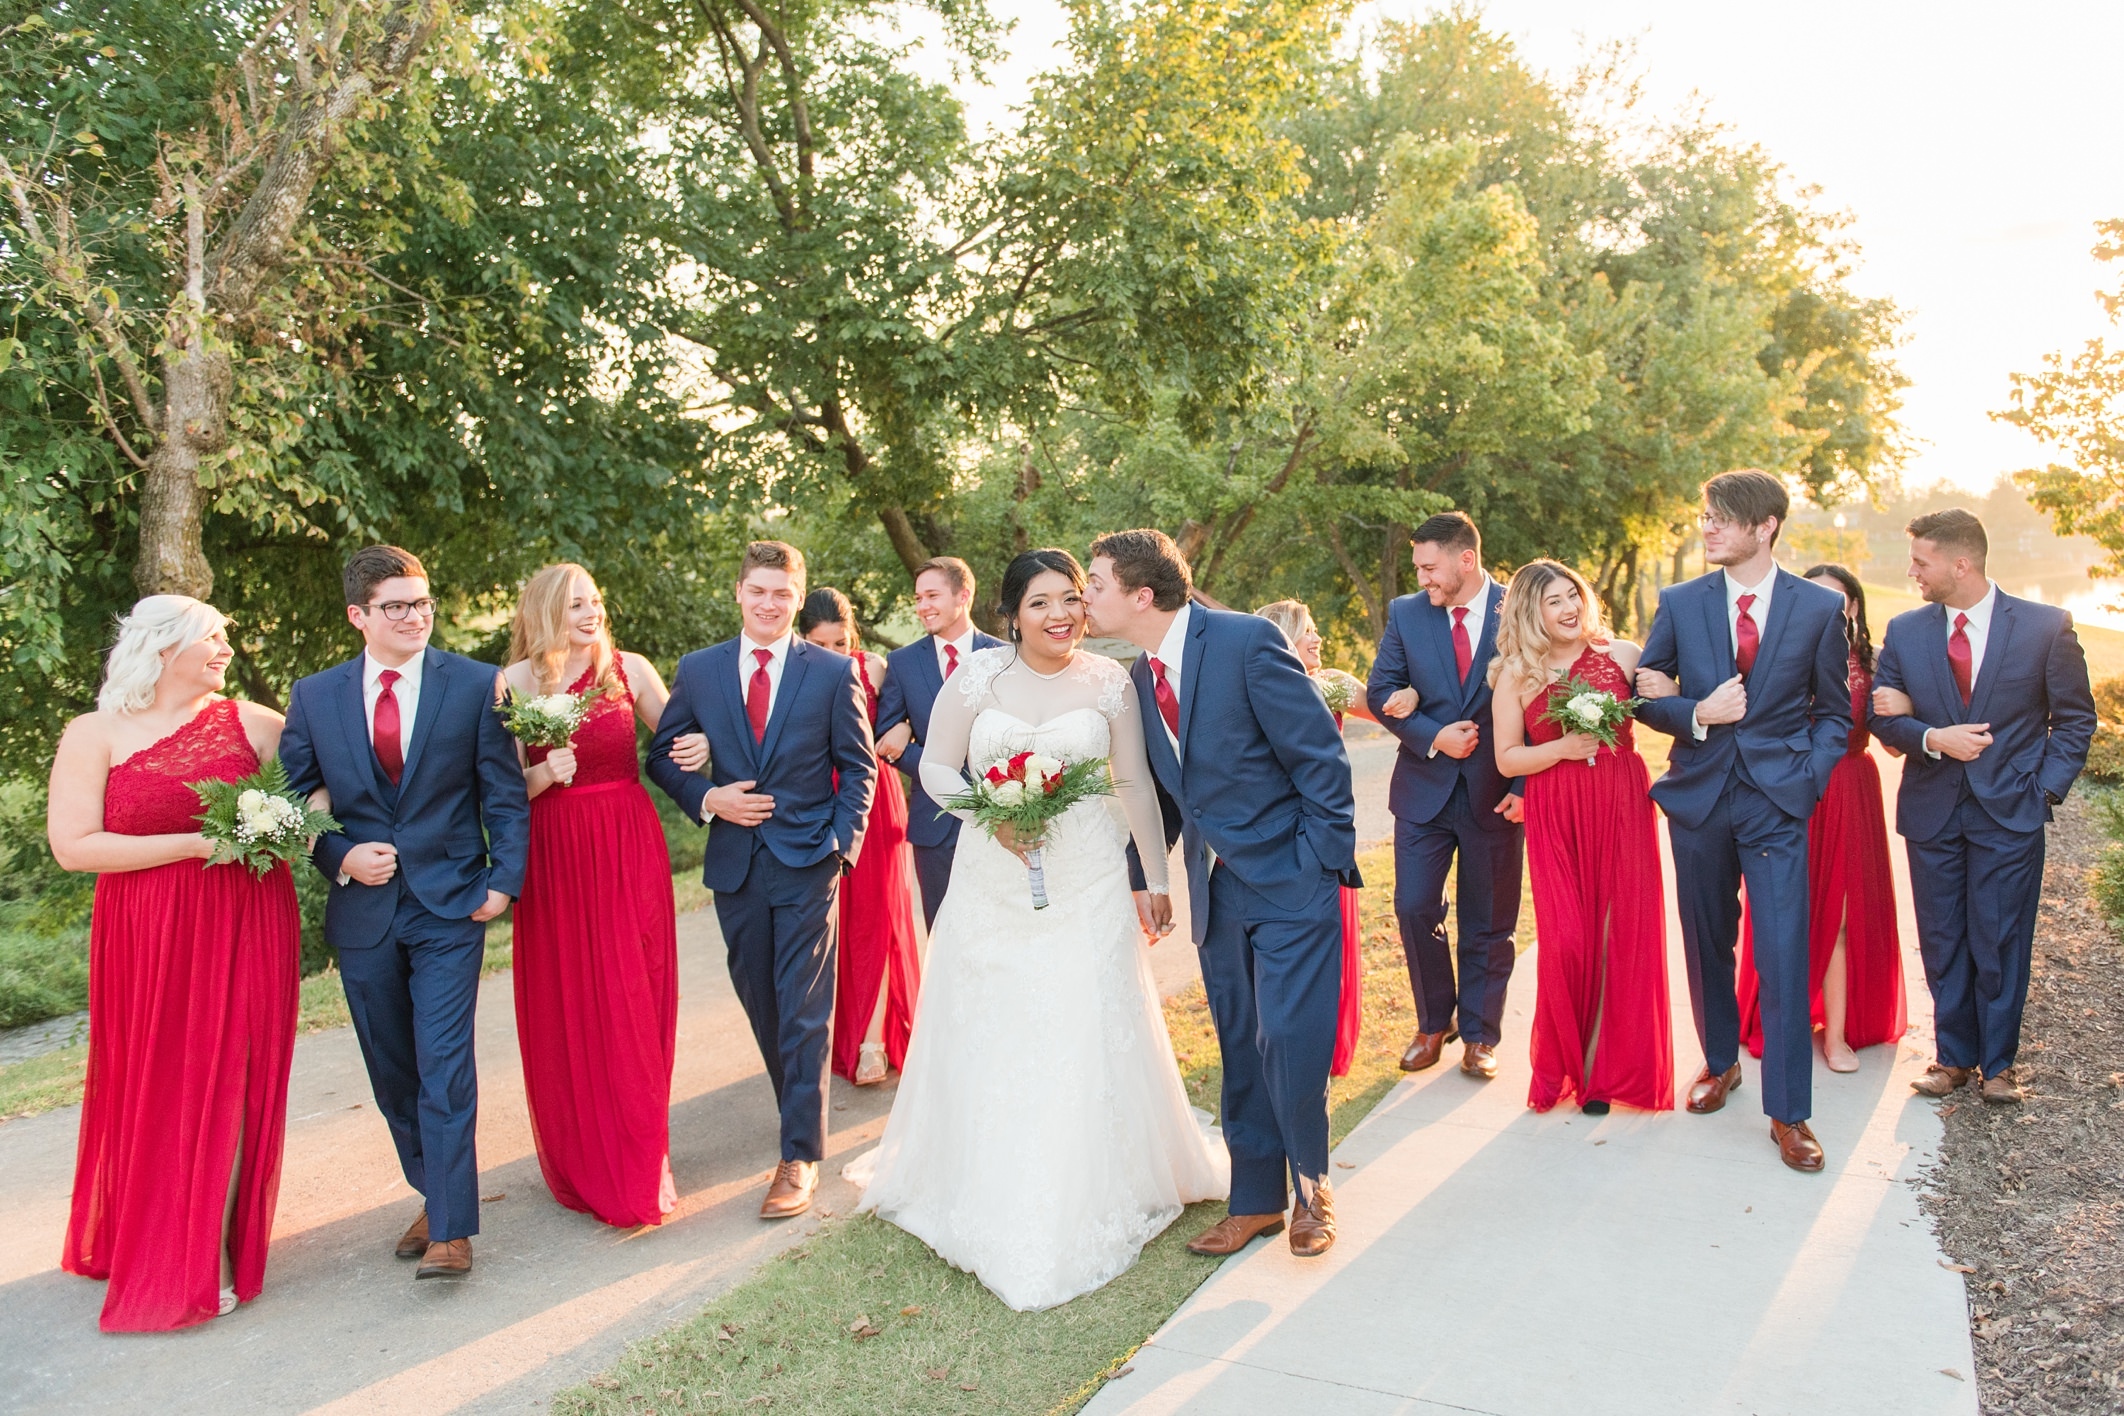 Chris + Sunny Wedding in Northwest Arkansas